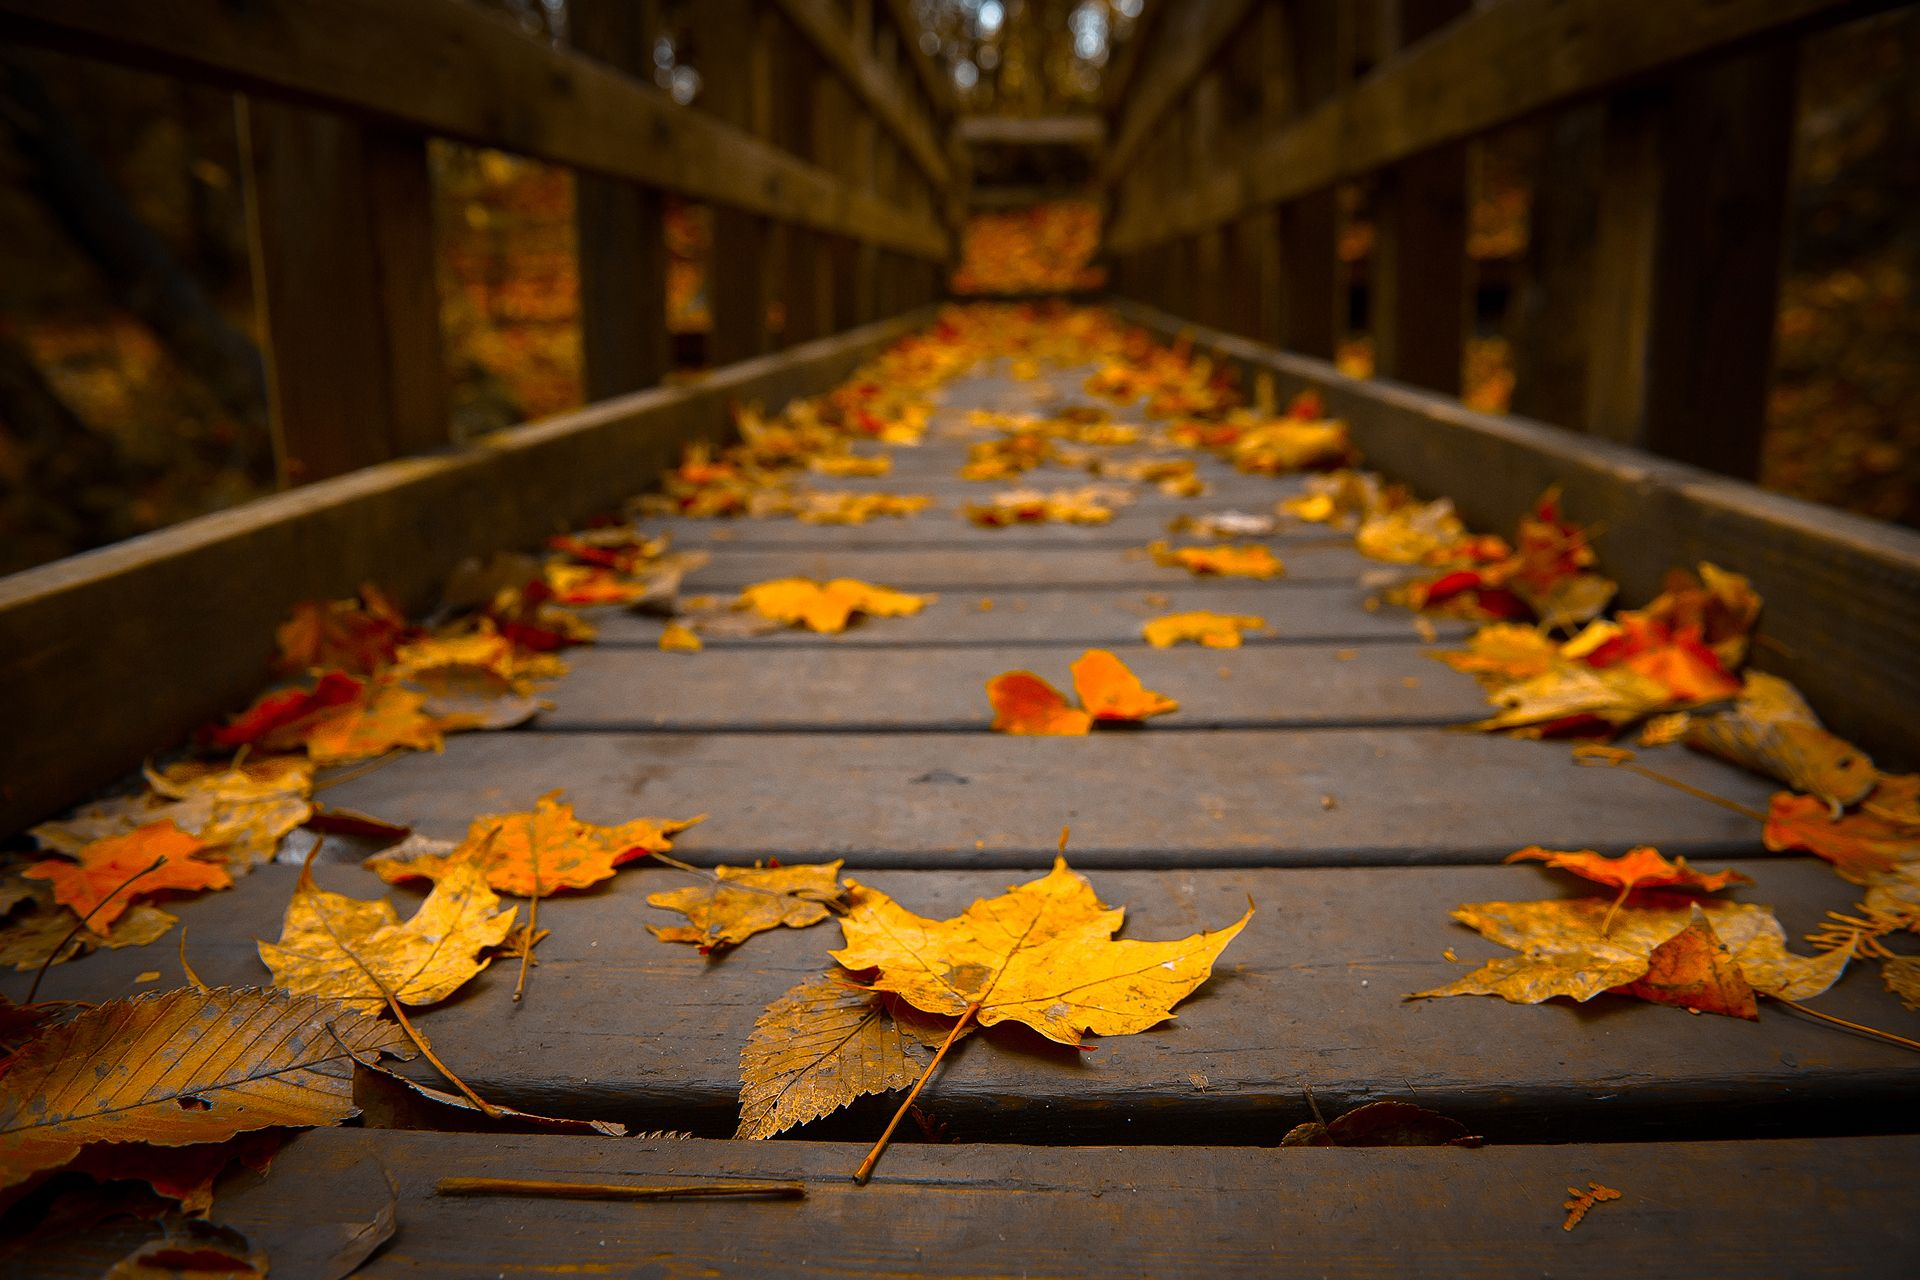 Hd Autumn Leaves Wallpaper Download Free 59728 In 2019